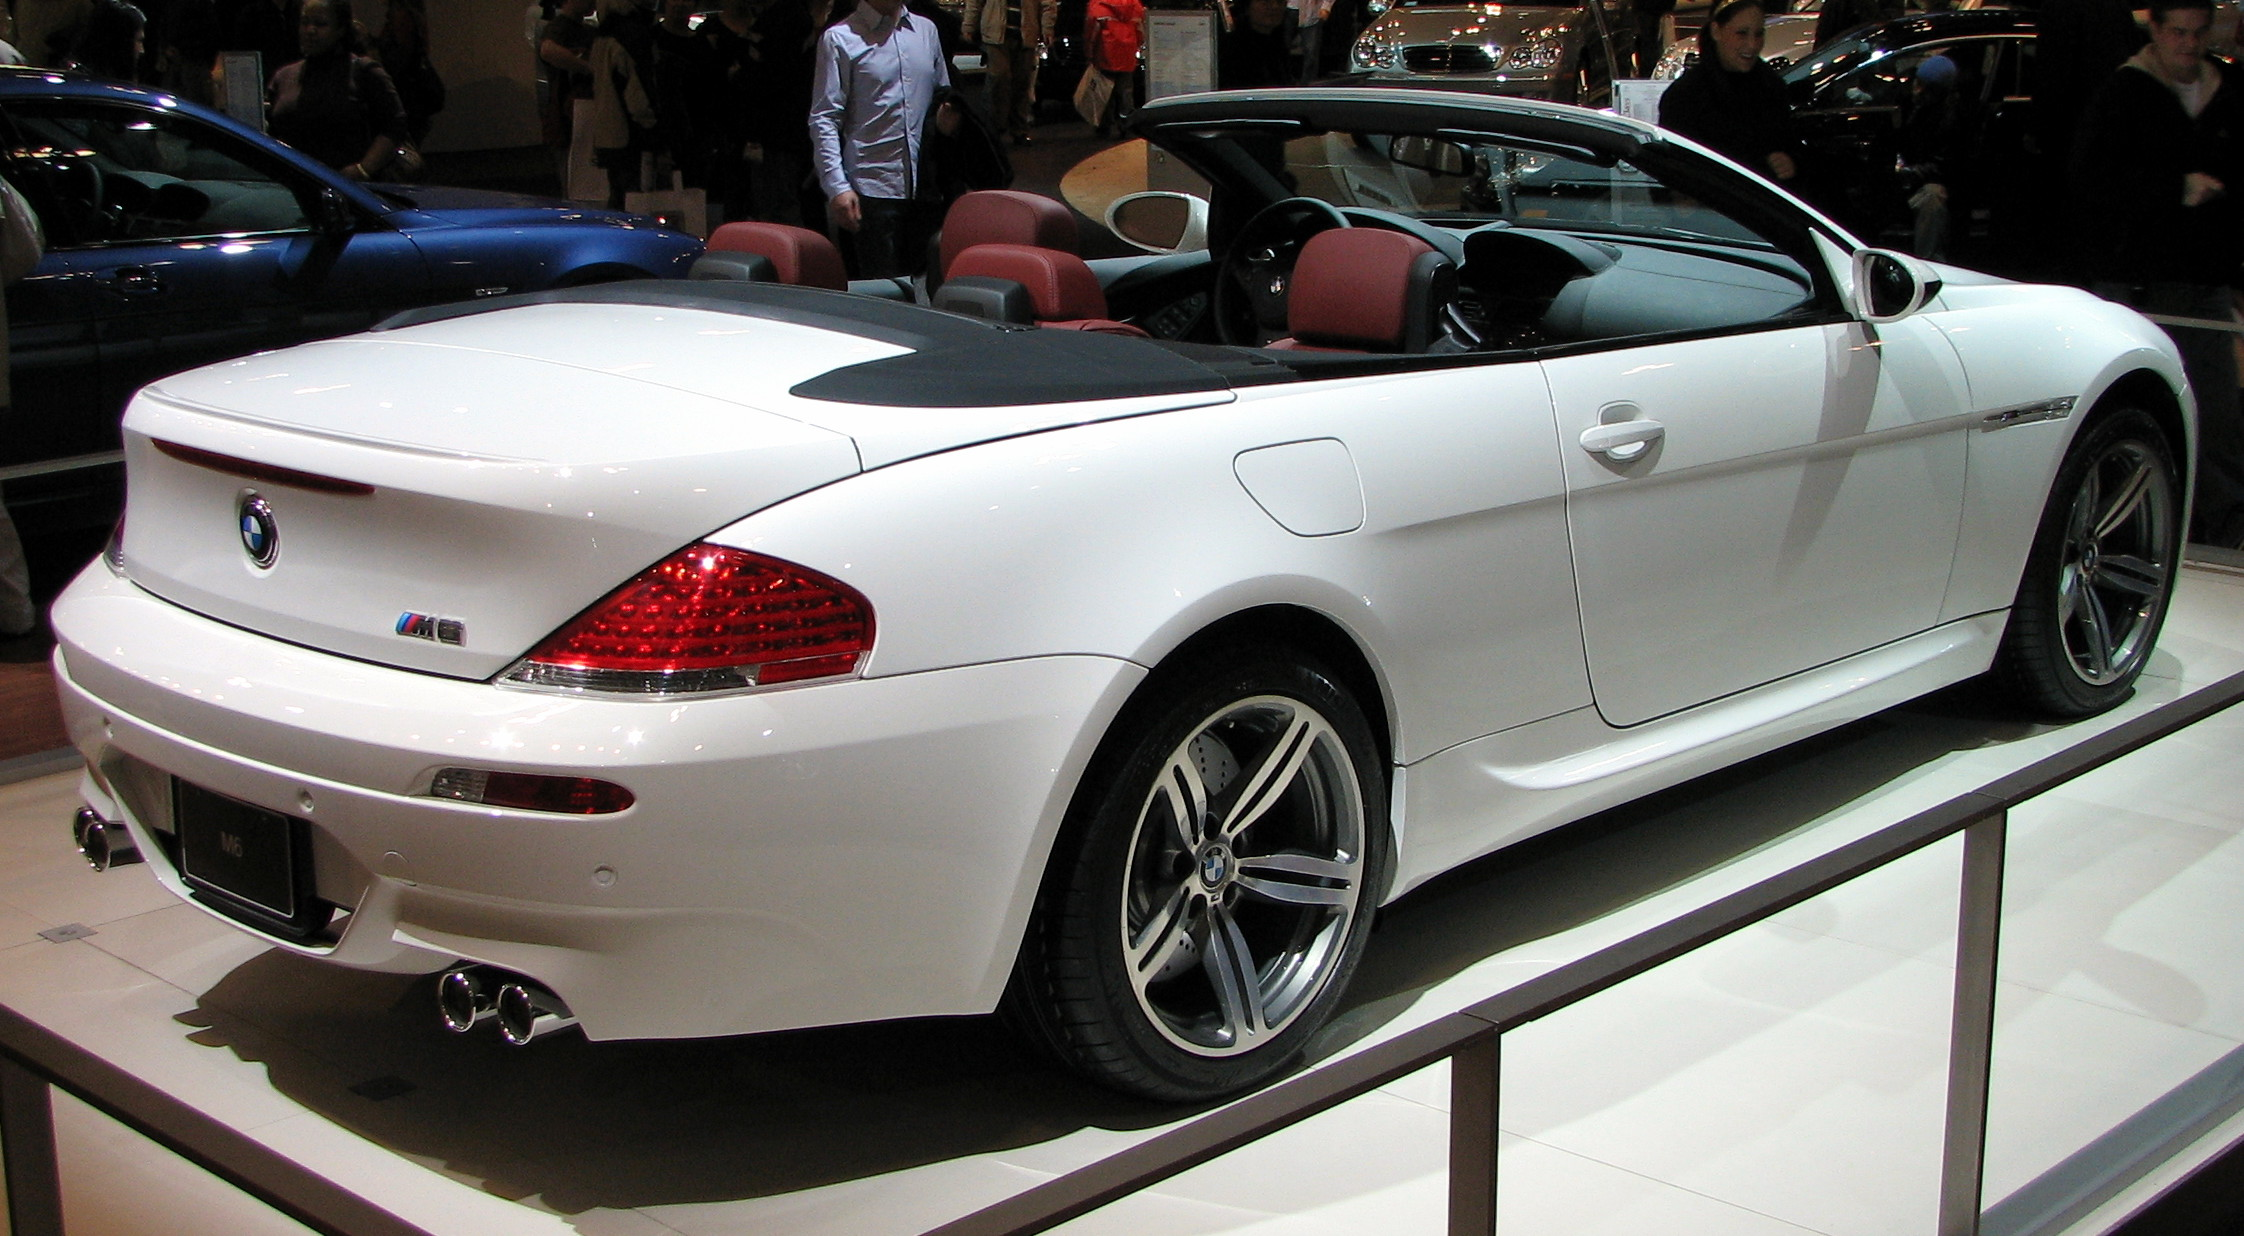 File:2007 BMW M6 Convertible E64 snow white.jpg - Wikimedia Commons